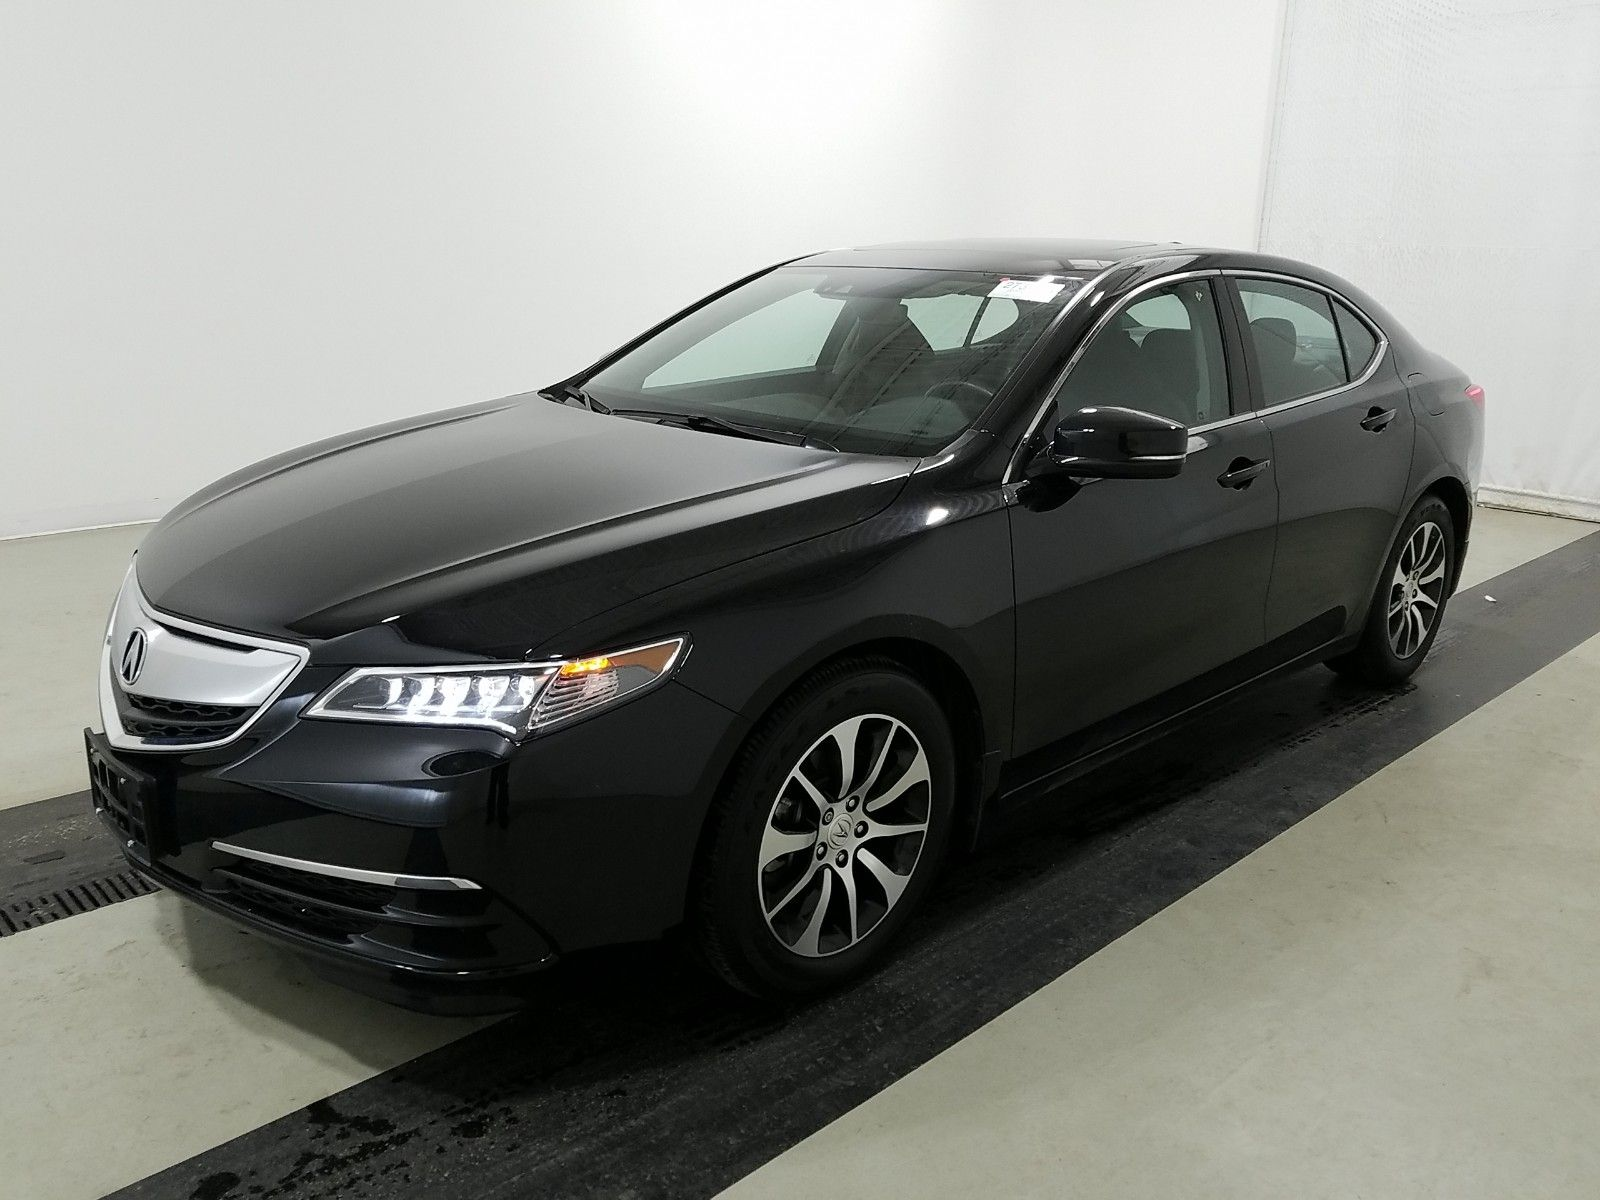 2017 Acura Tlx 2.4. Lot 99913217916 Vin 19UUB1F52HA010590